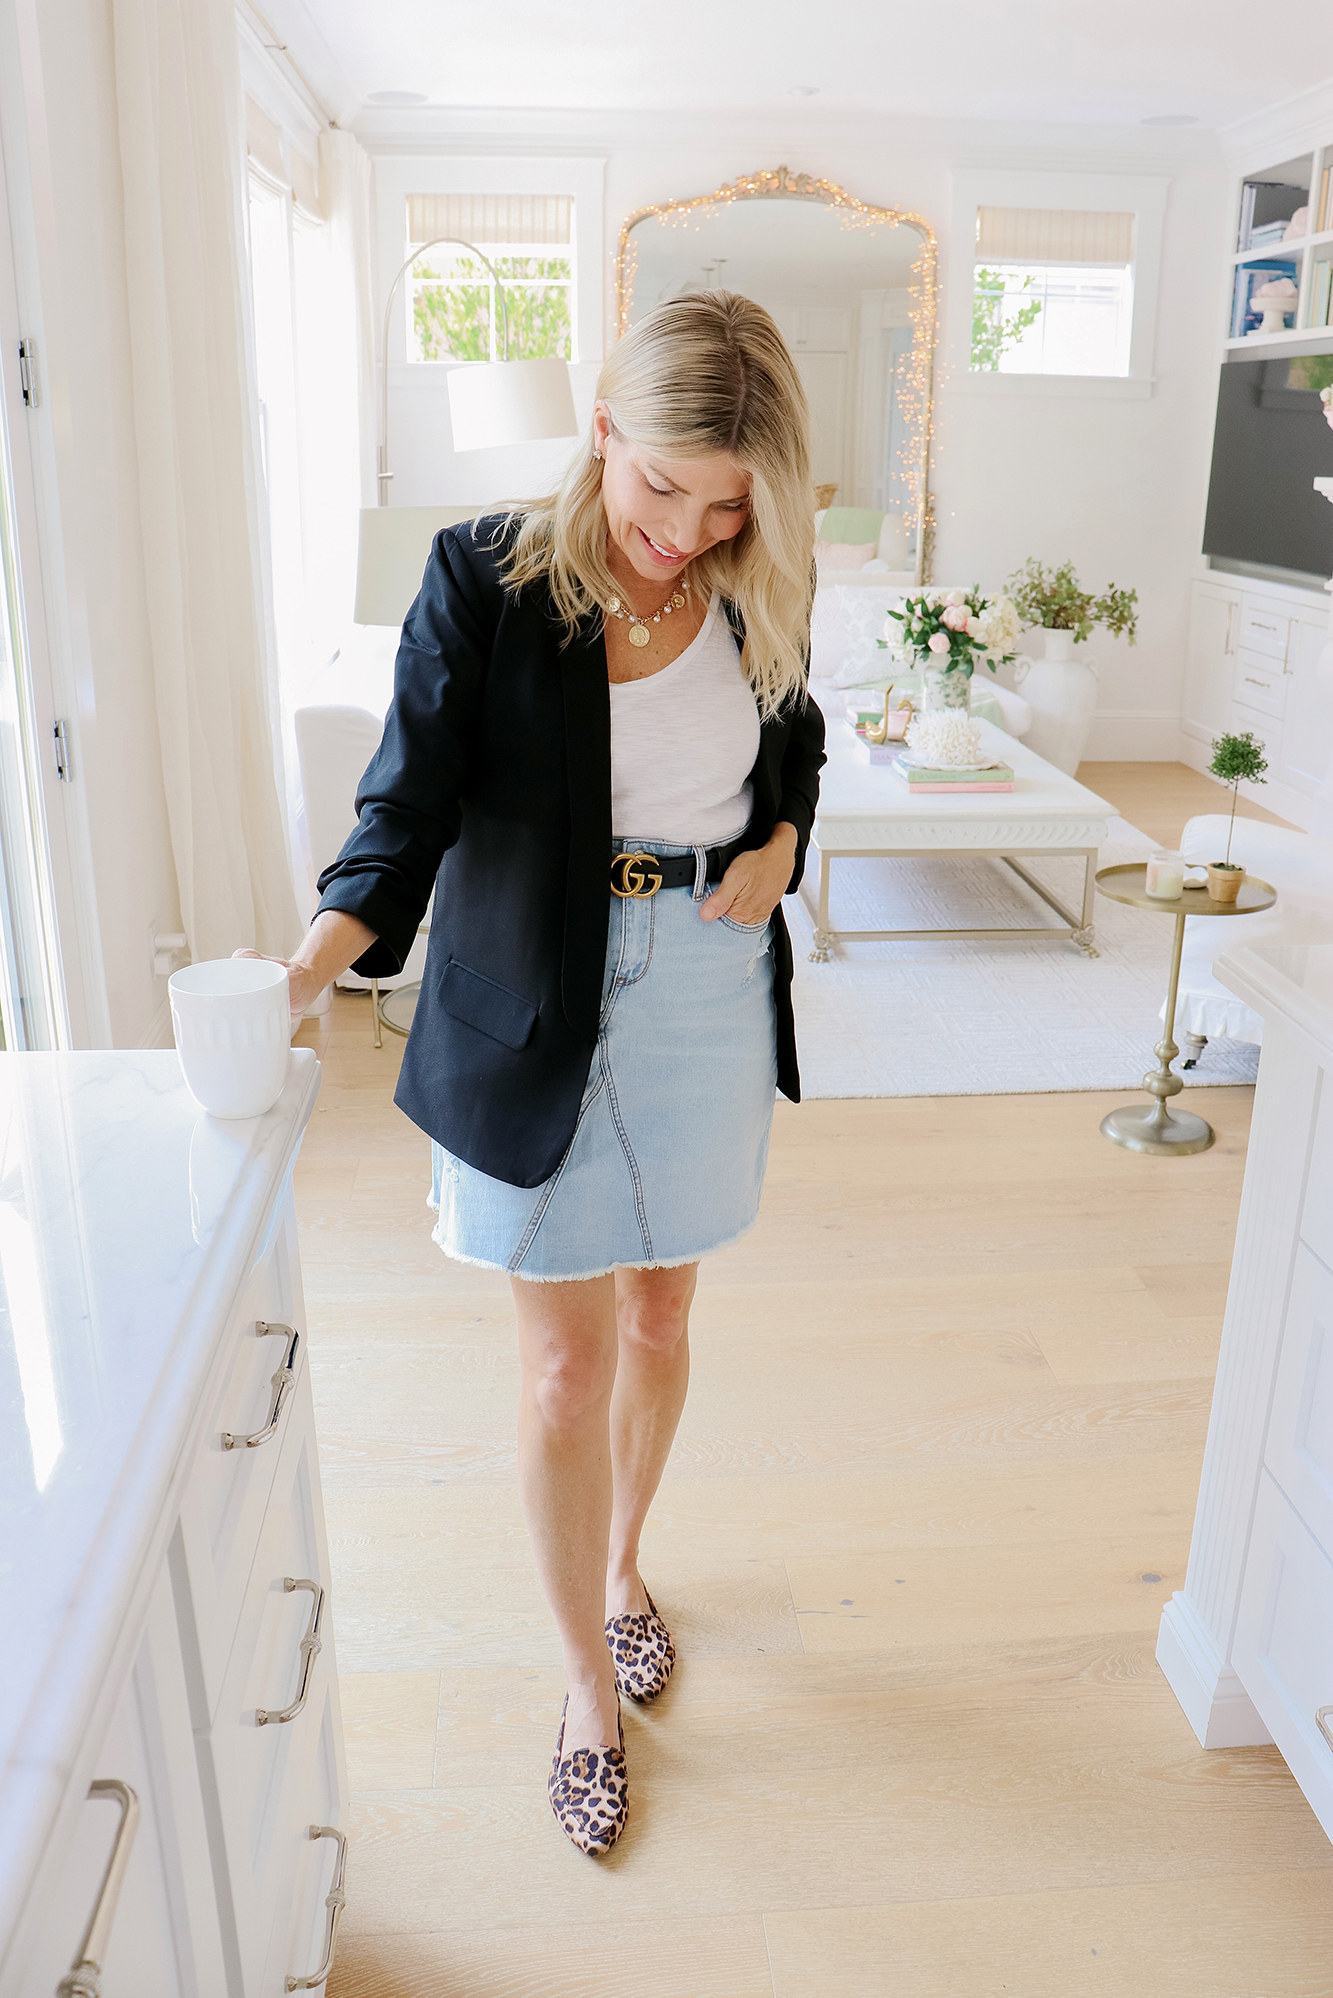 Work from Home Chic & Casual Fall Fashion Finds - The cutest and most affordable workwear options for working from home. Fall fashion ideas & trends.